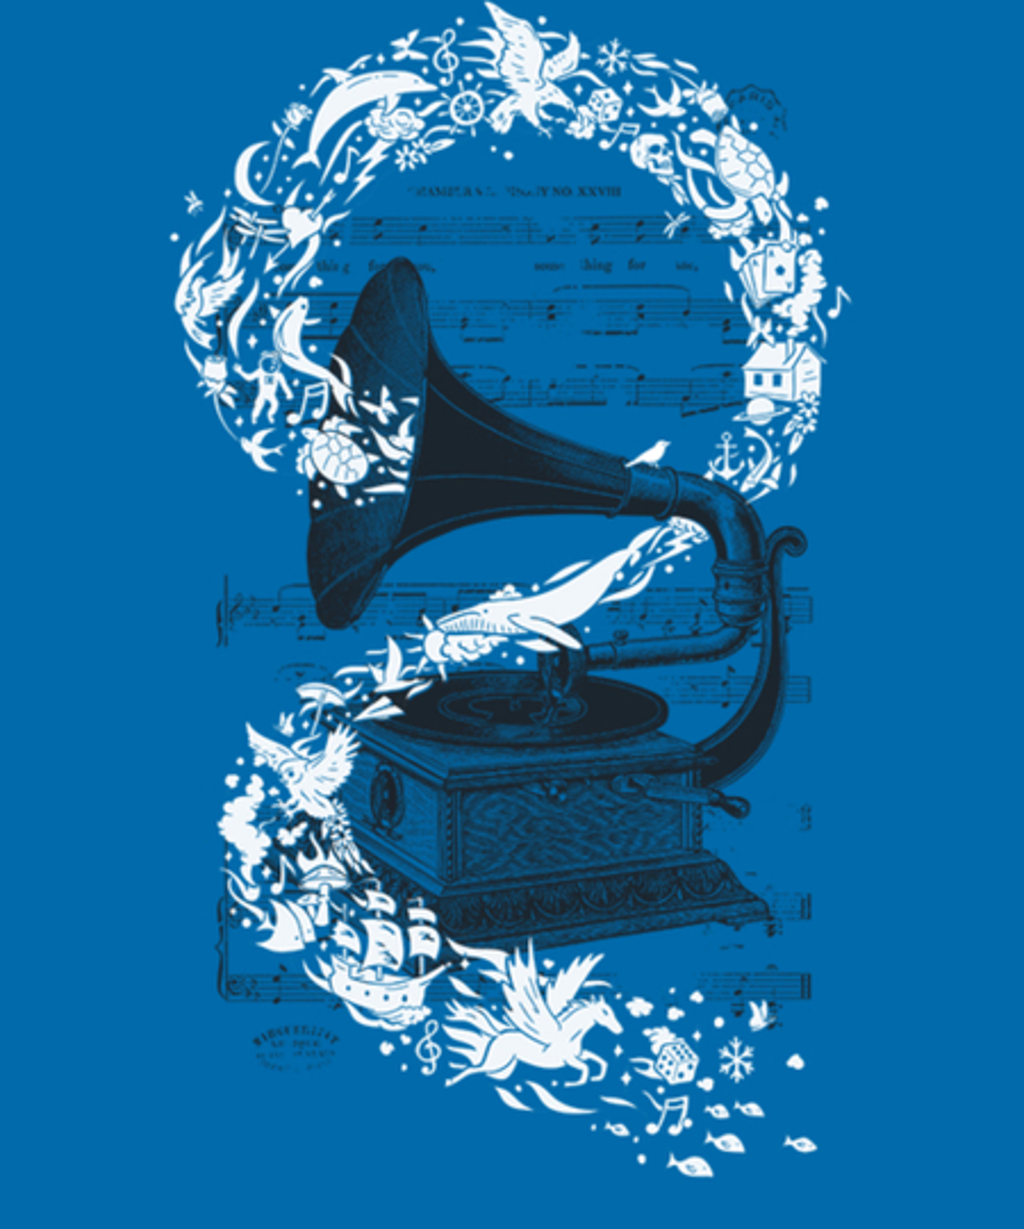 Qwertee: A Musical Journey